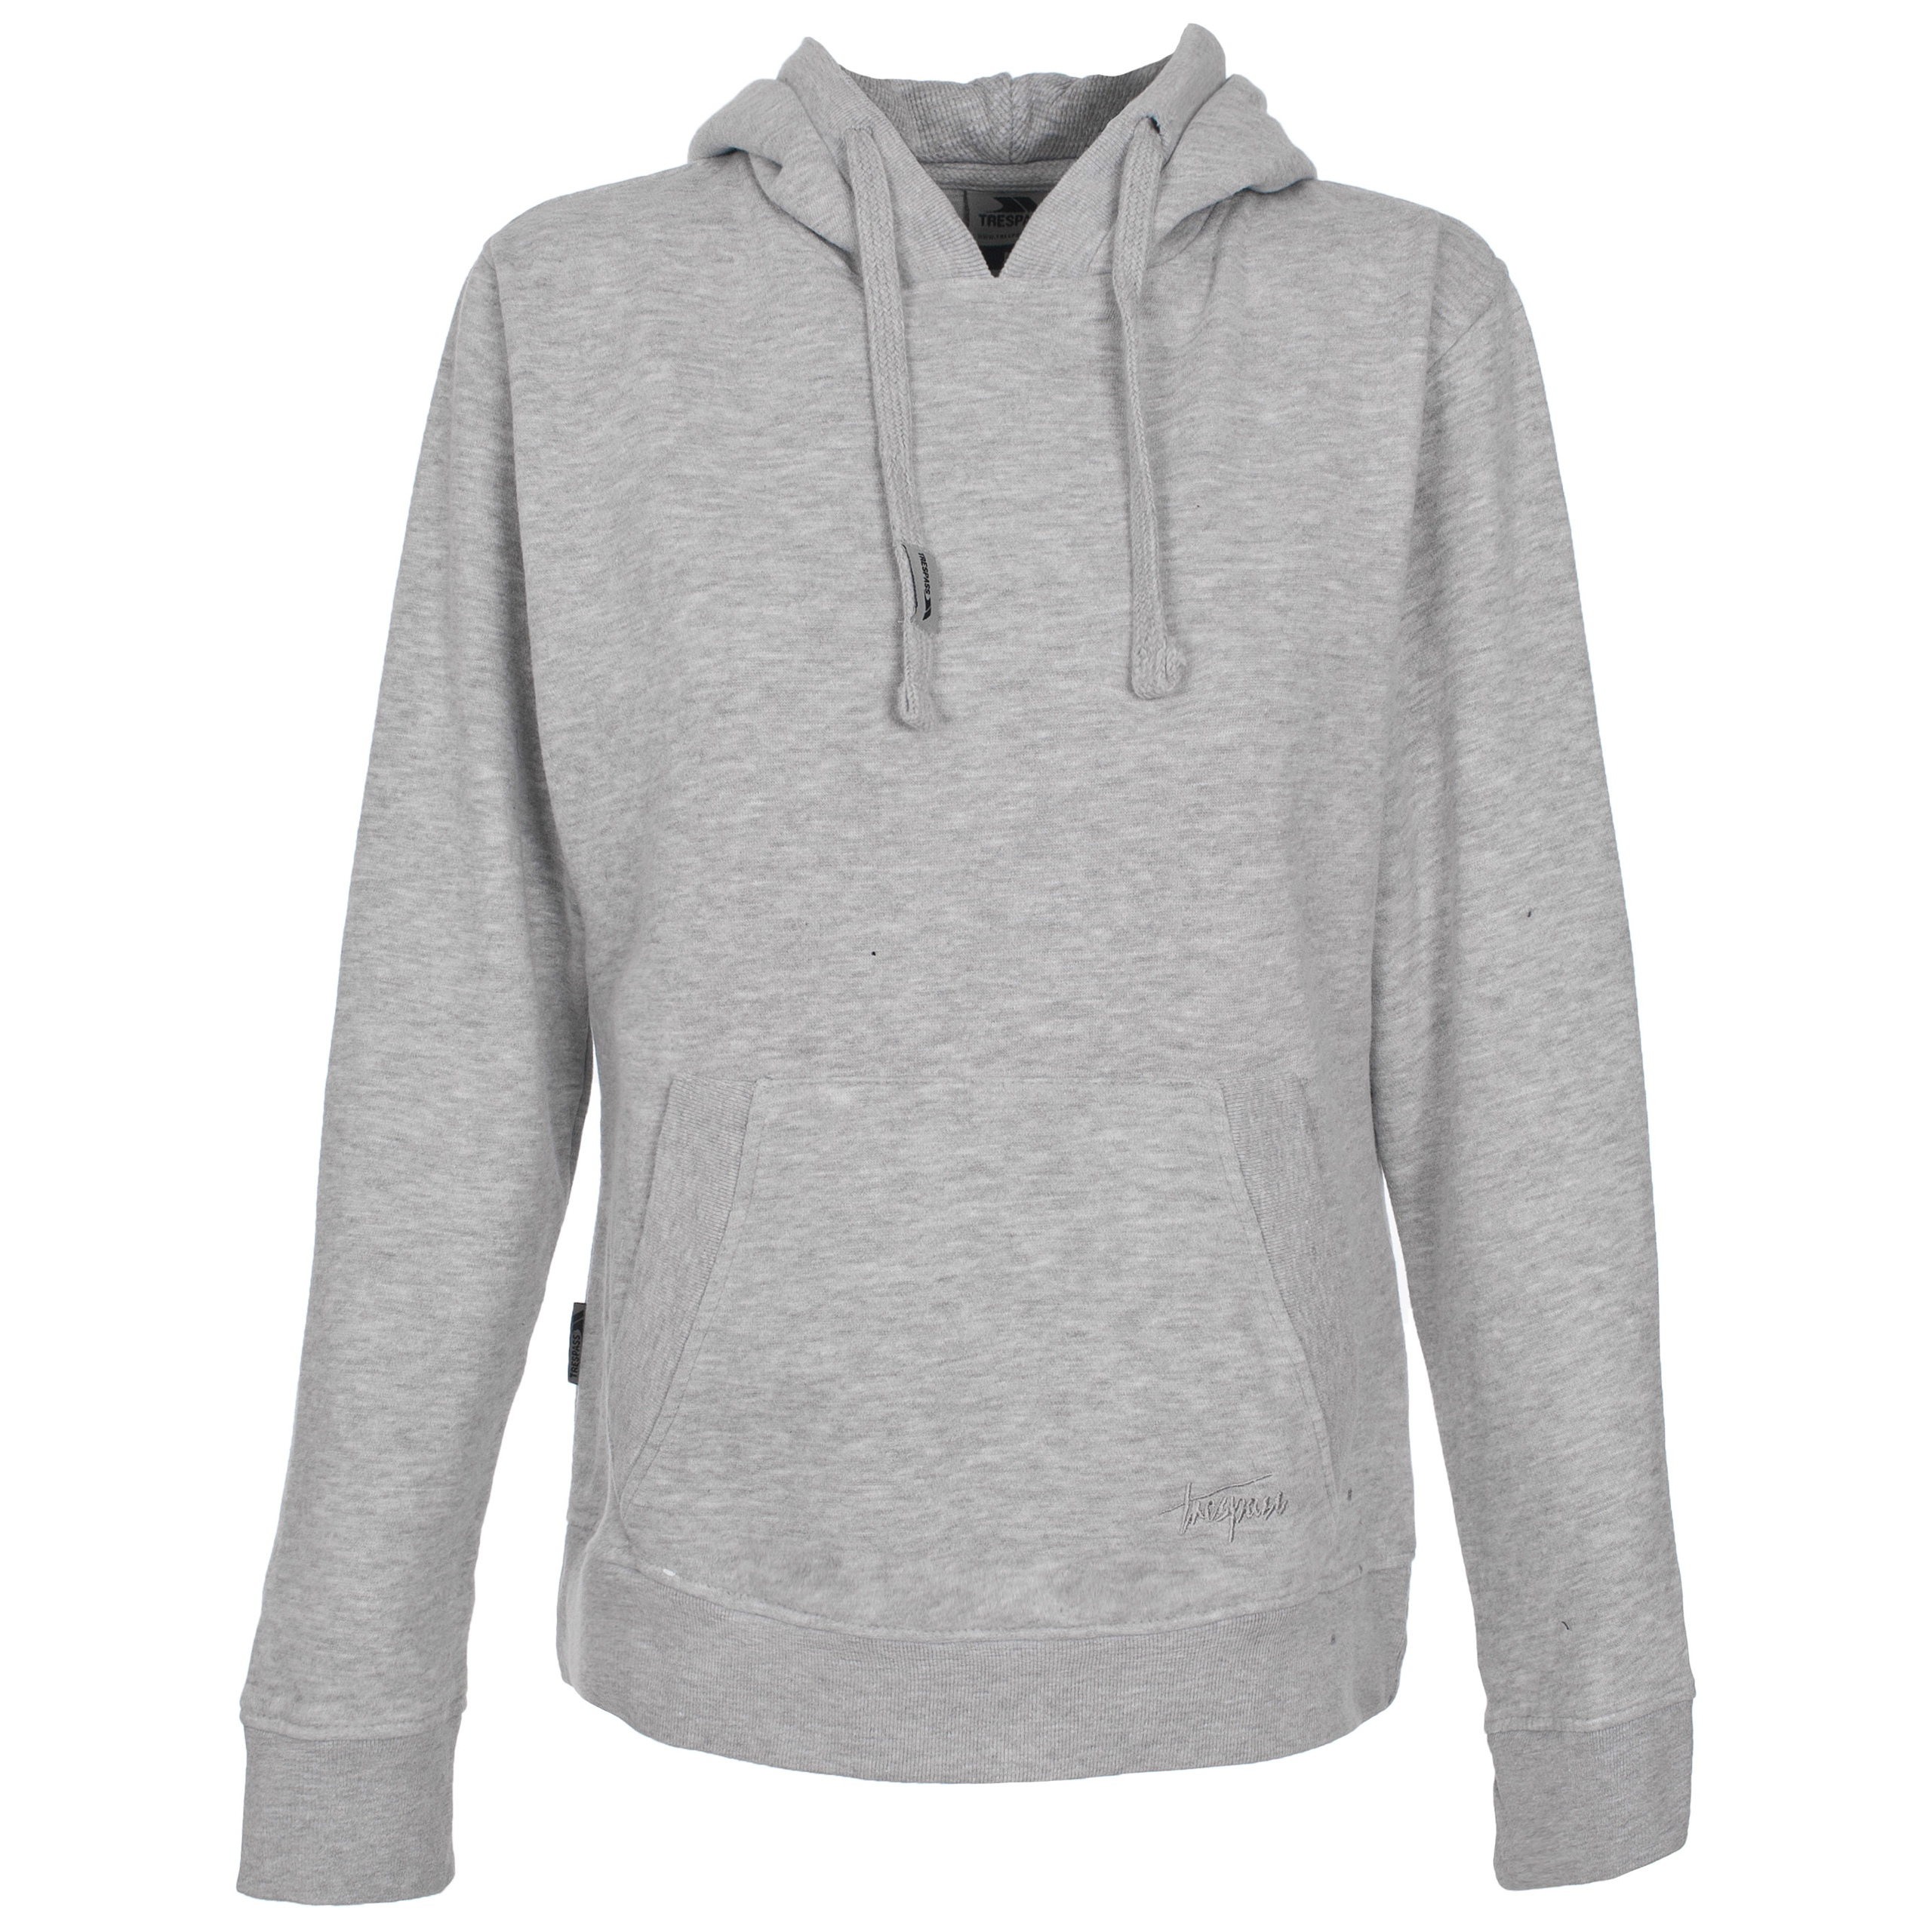 Hoodies - Clothing Reviews - Part 98